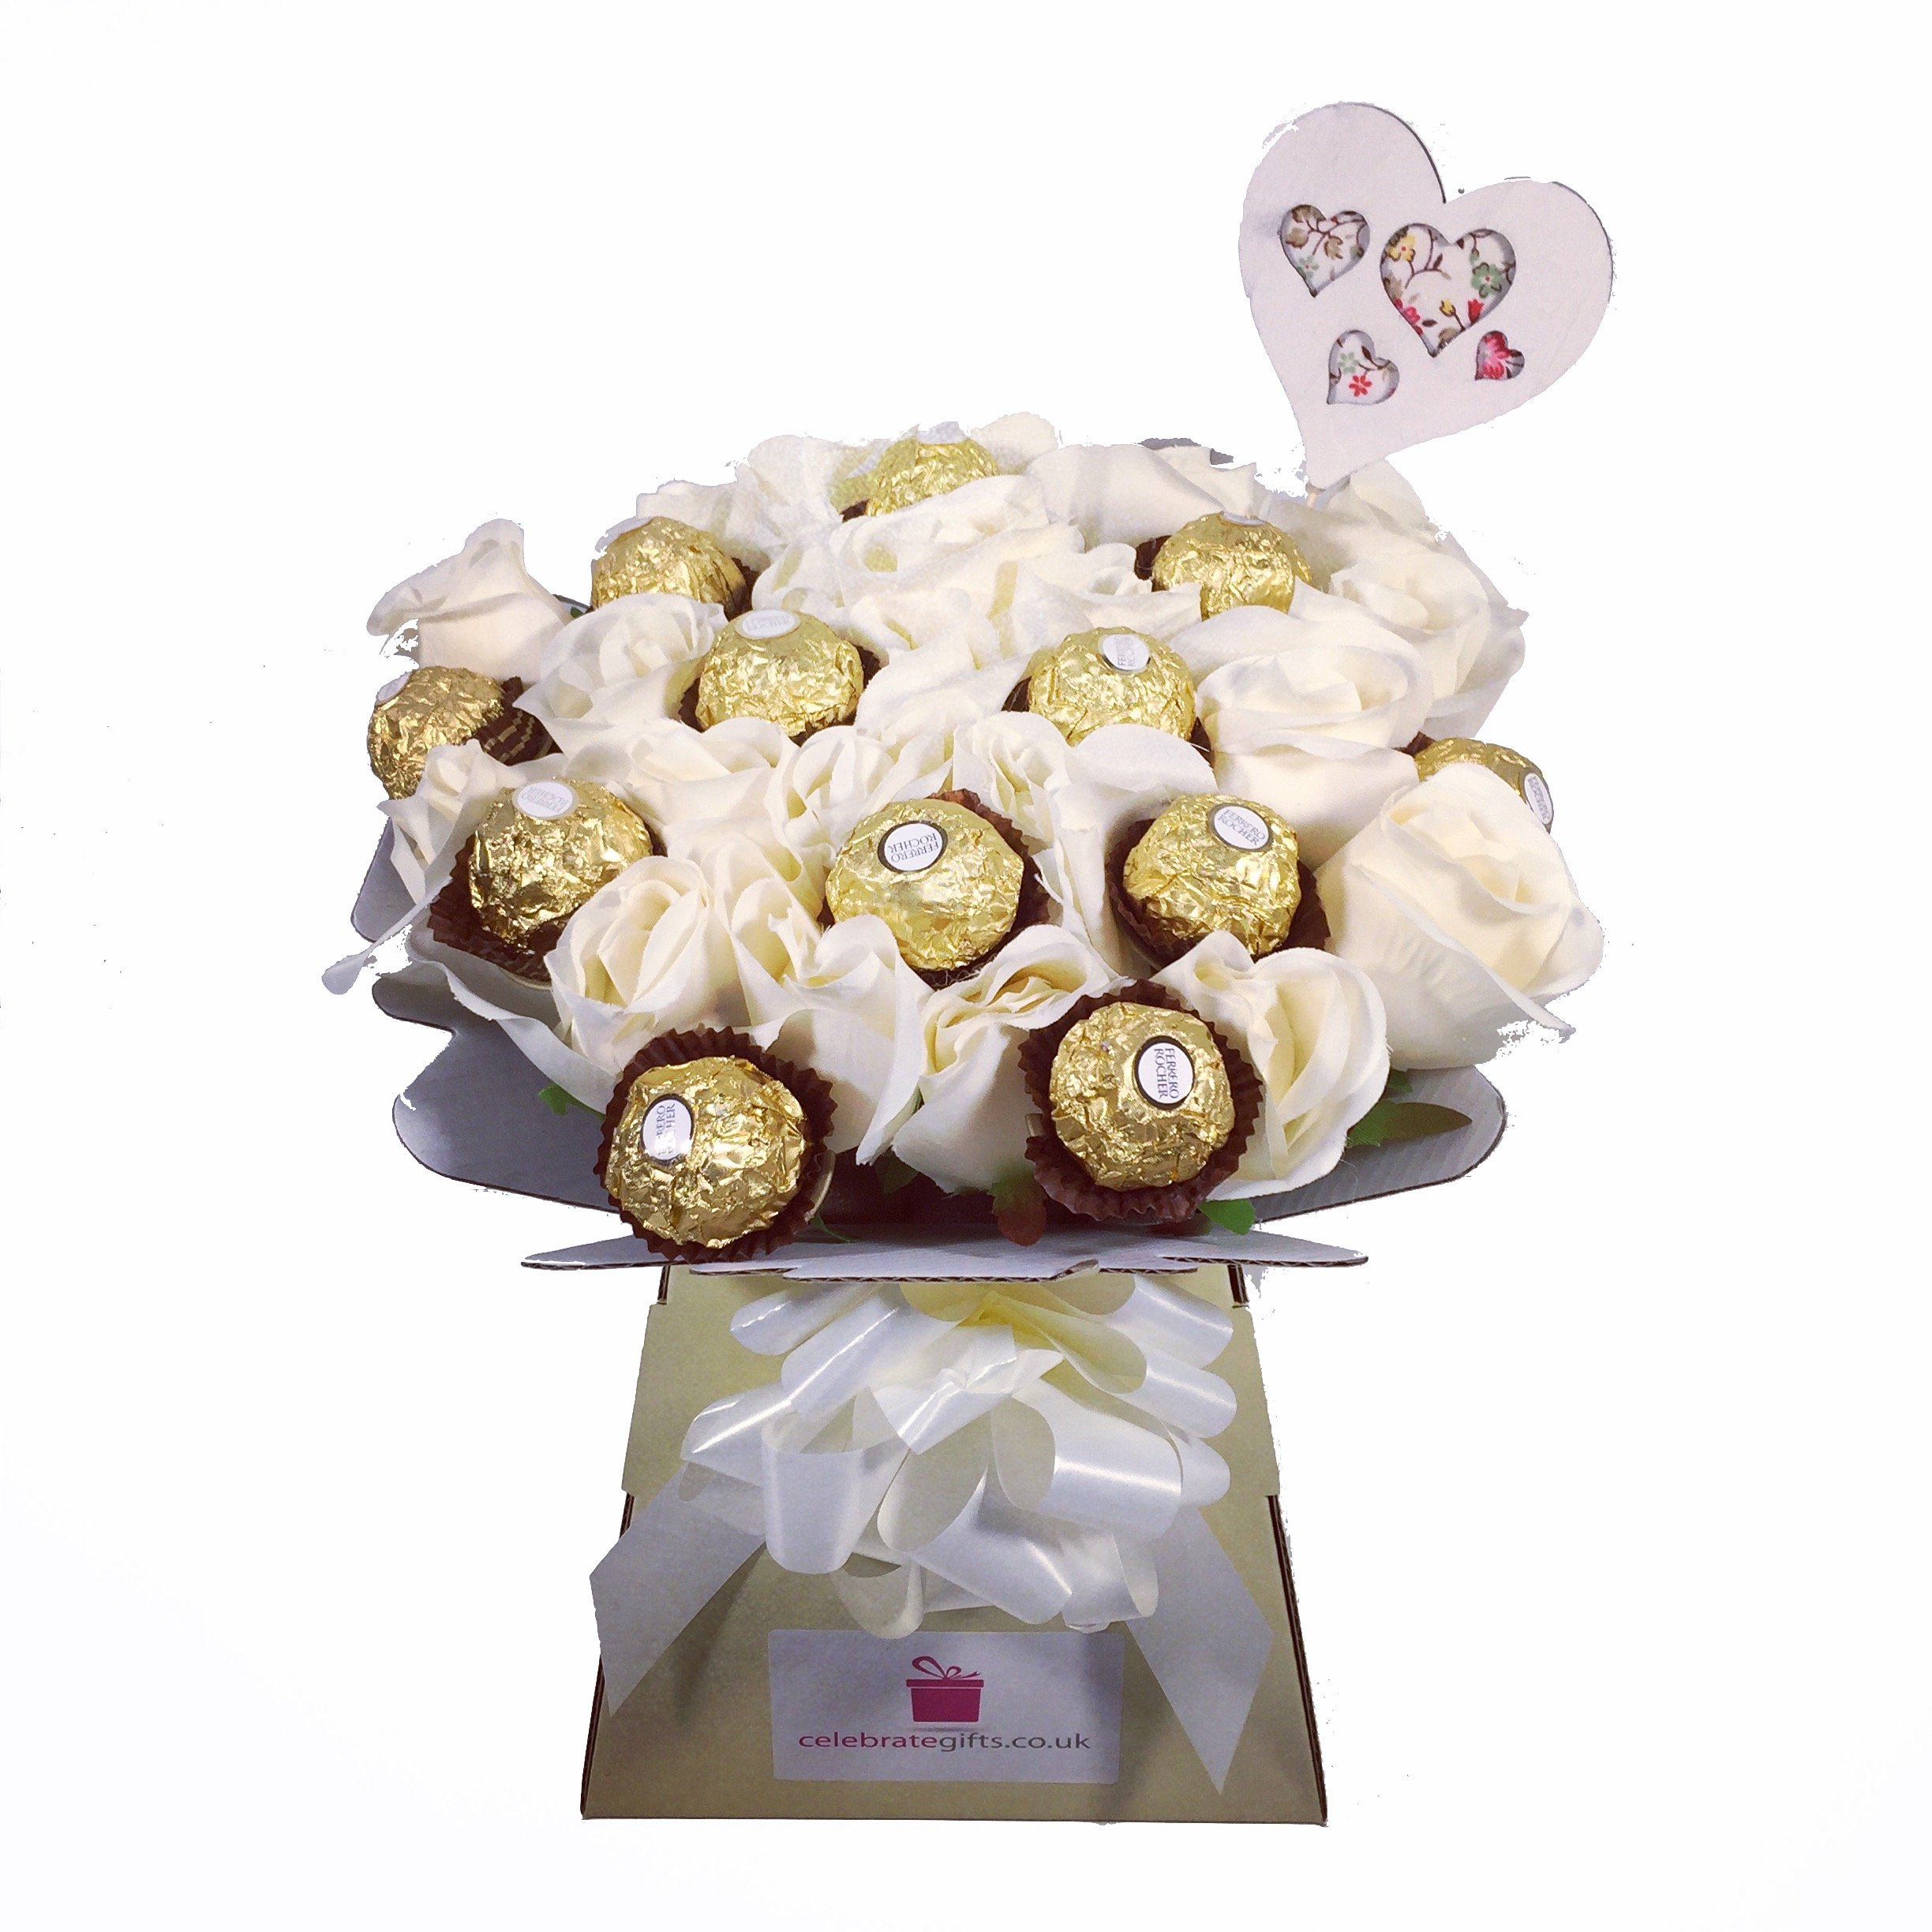 Chocolate flower bouquet amazon luxury silk ivory roses and ferrero rocher chocolate bouquet izmirmasajfo